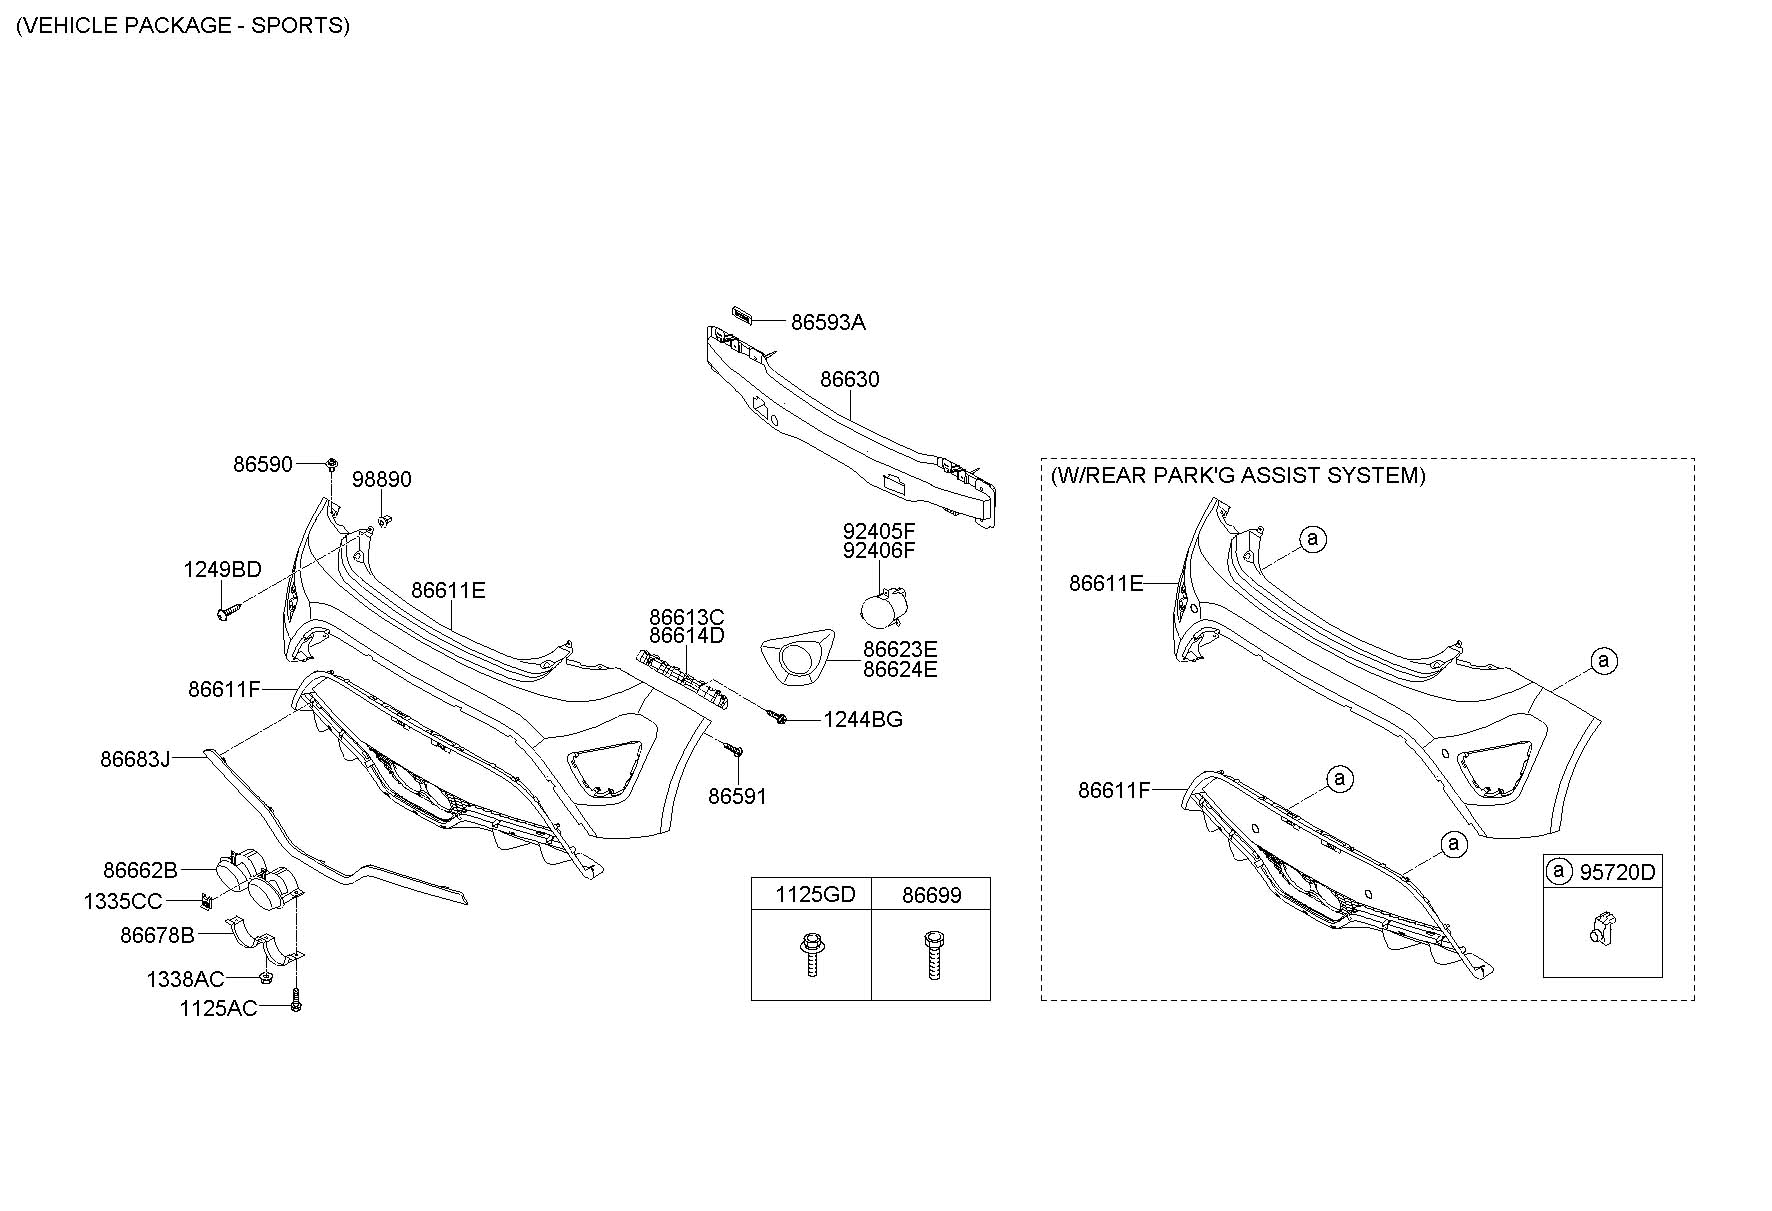 Hyundai Veloster Parts Diagram Trusted Schematics 2012 Engine Stock Exhaust Tip Removal Xg350